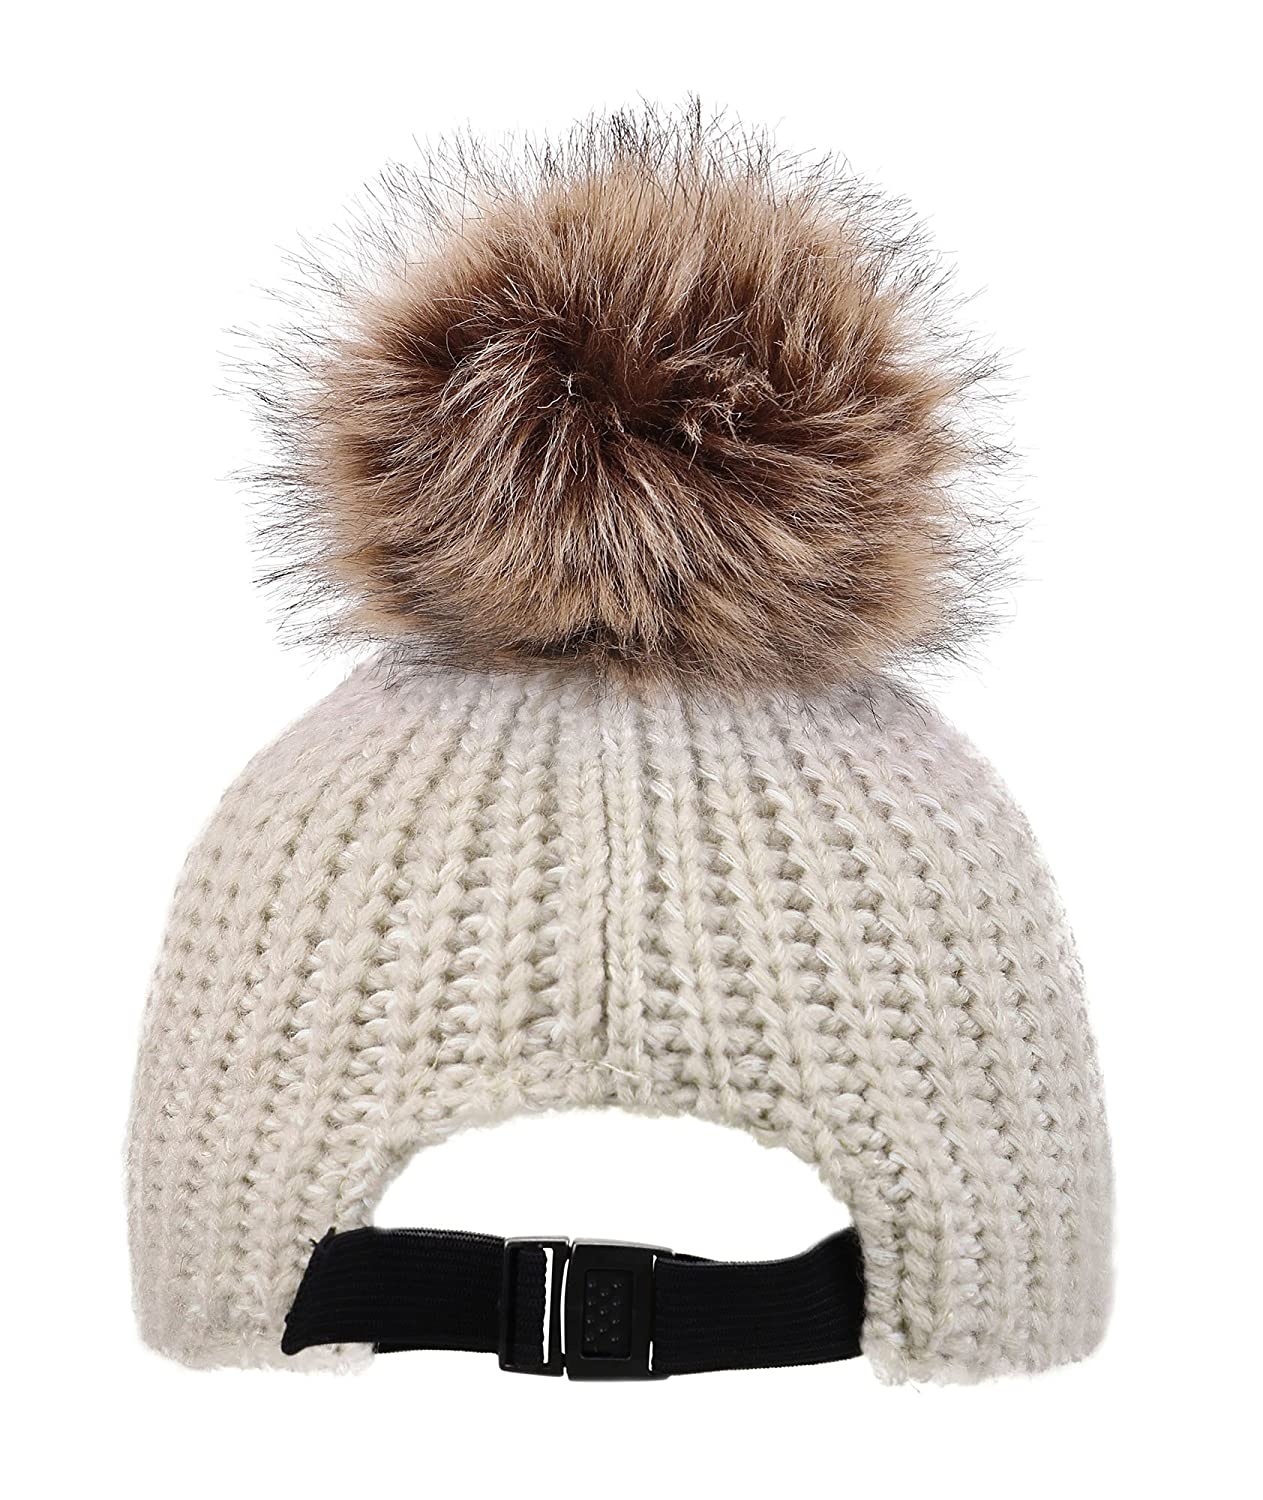 a8942f9ec2c Amazon.com  Kids Girls Winter Warm Thick Knitted Ski Pompom Beanie Hat Beige   Clothing